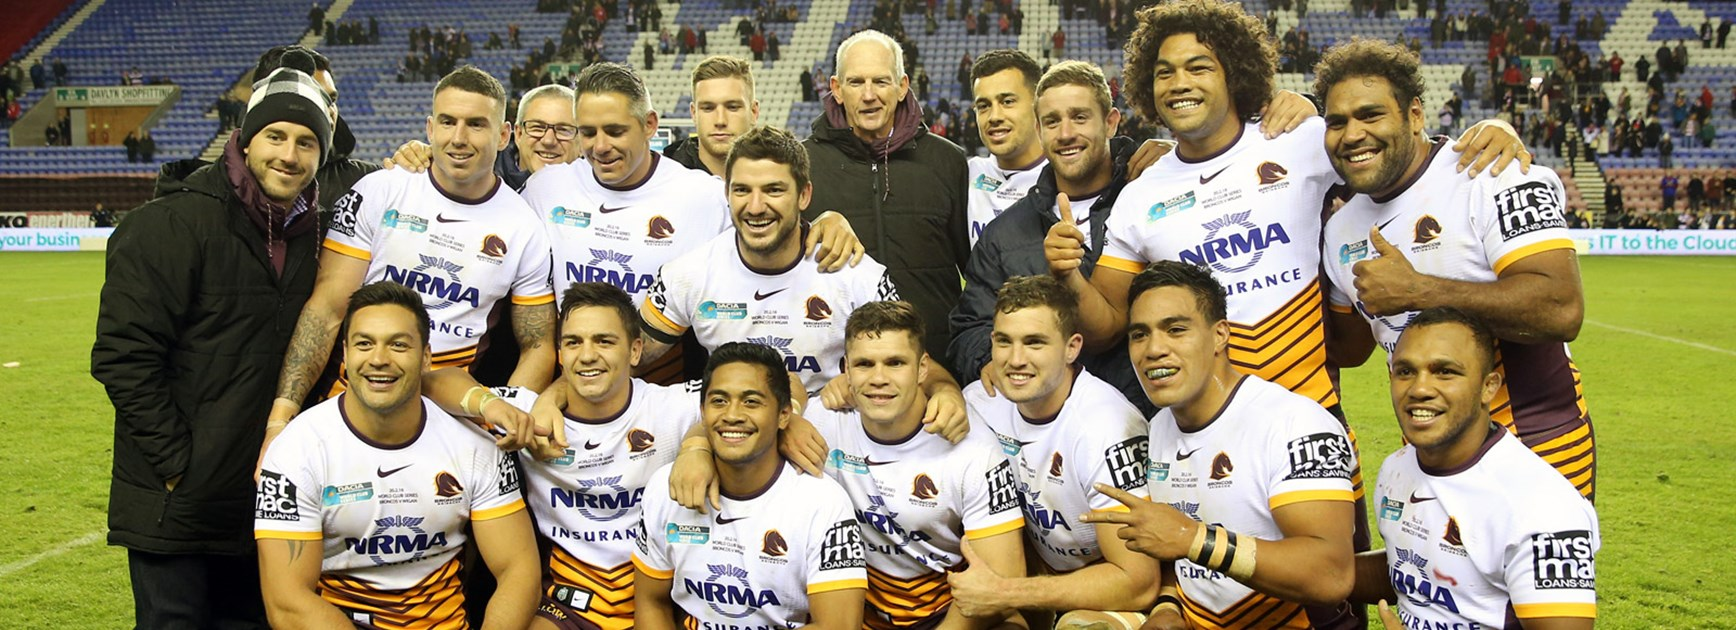 The victorious Brisbane Broncos following their 2016 World Club Series win over Wigan.